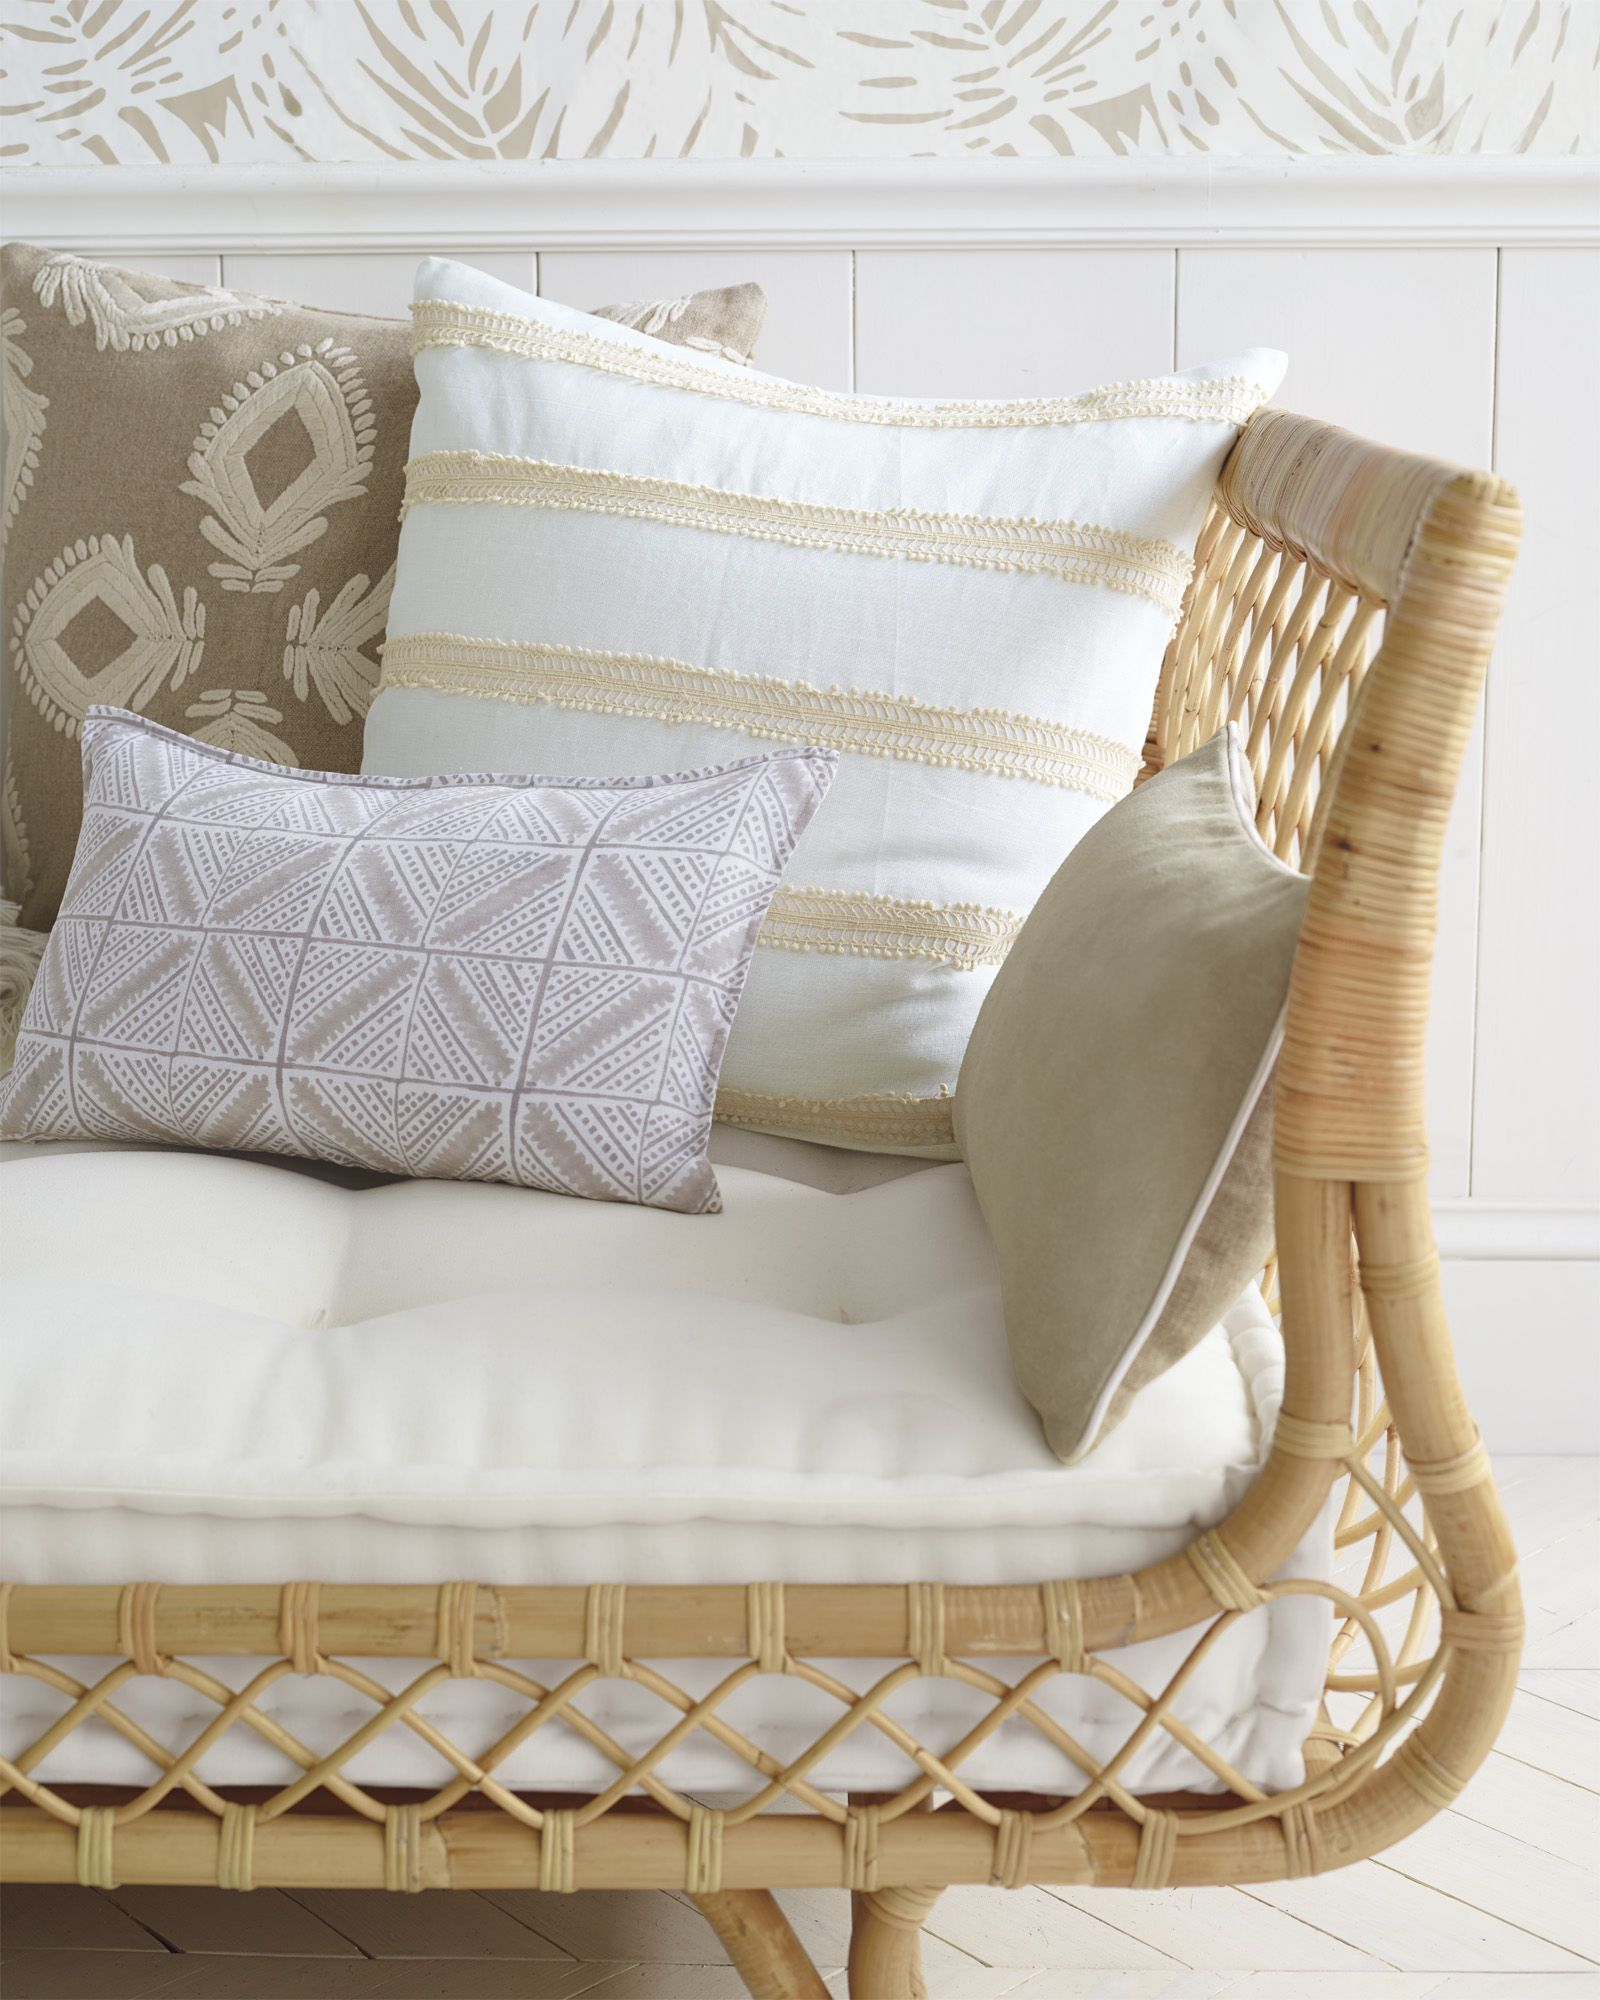 Avalon daybed daybed french sofa and rattan